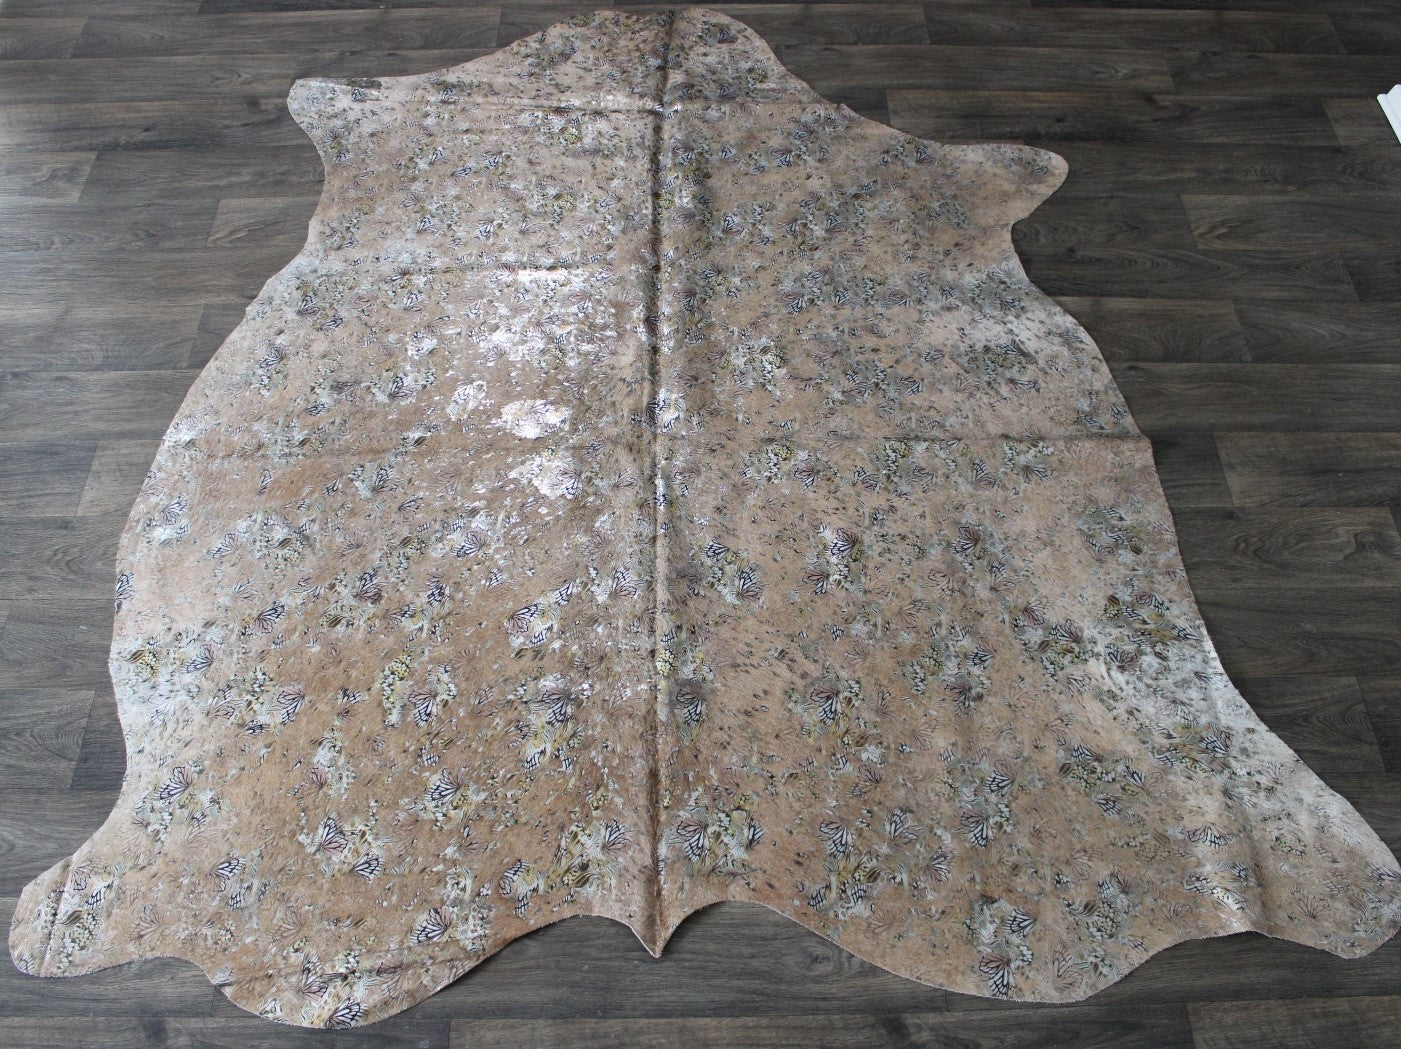 New Leather 3 or 4 or 5 or 6 sq ft Braided Fishtail SAGE GRAY  Cowhide 2.5-3 oz  1-1.2 mm PeggySueAlso\u2122 E3160-65